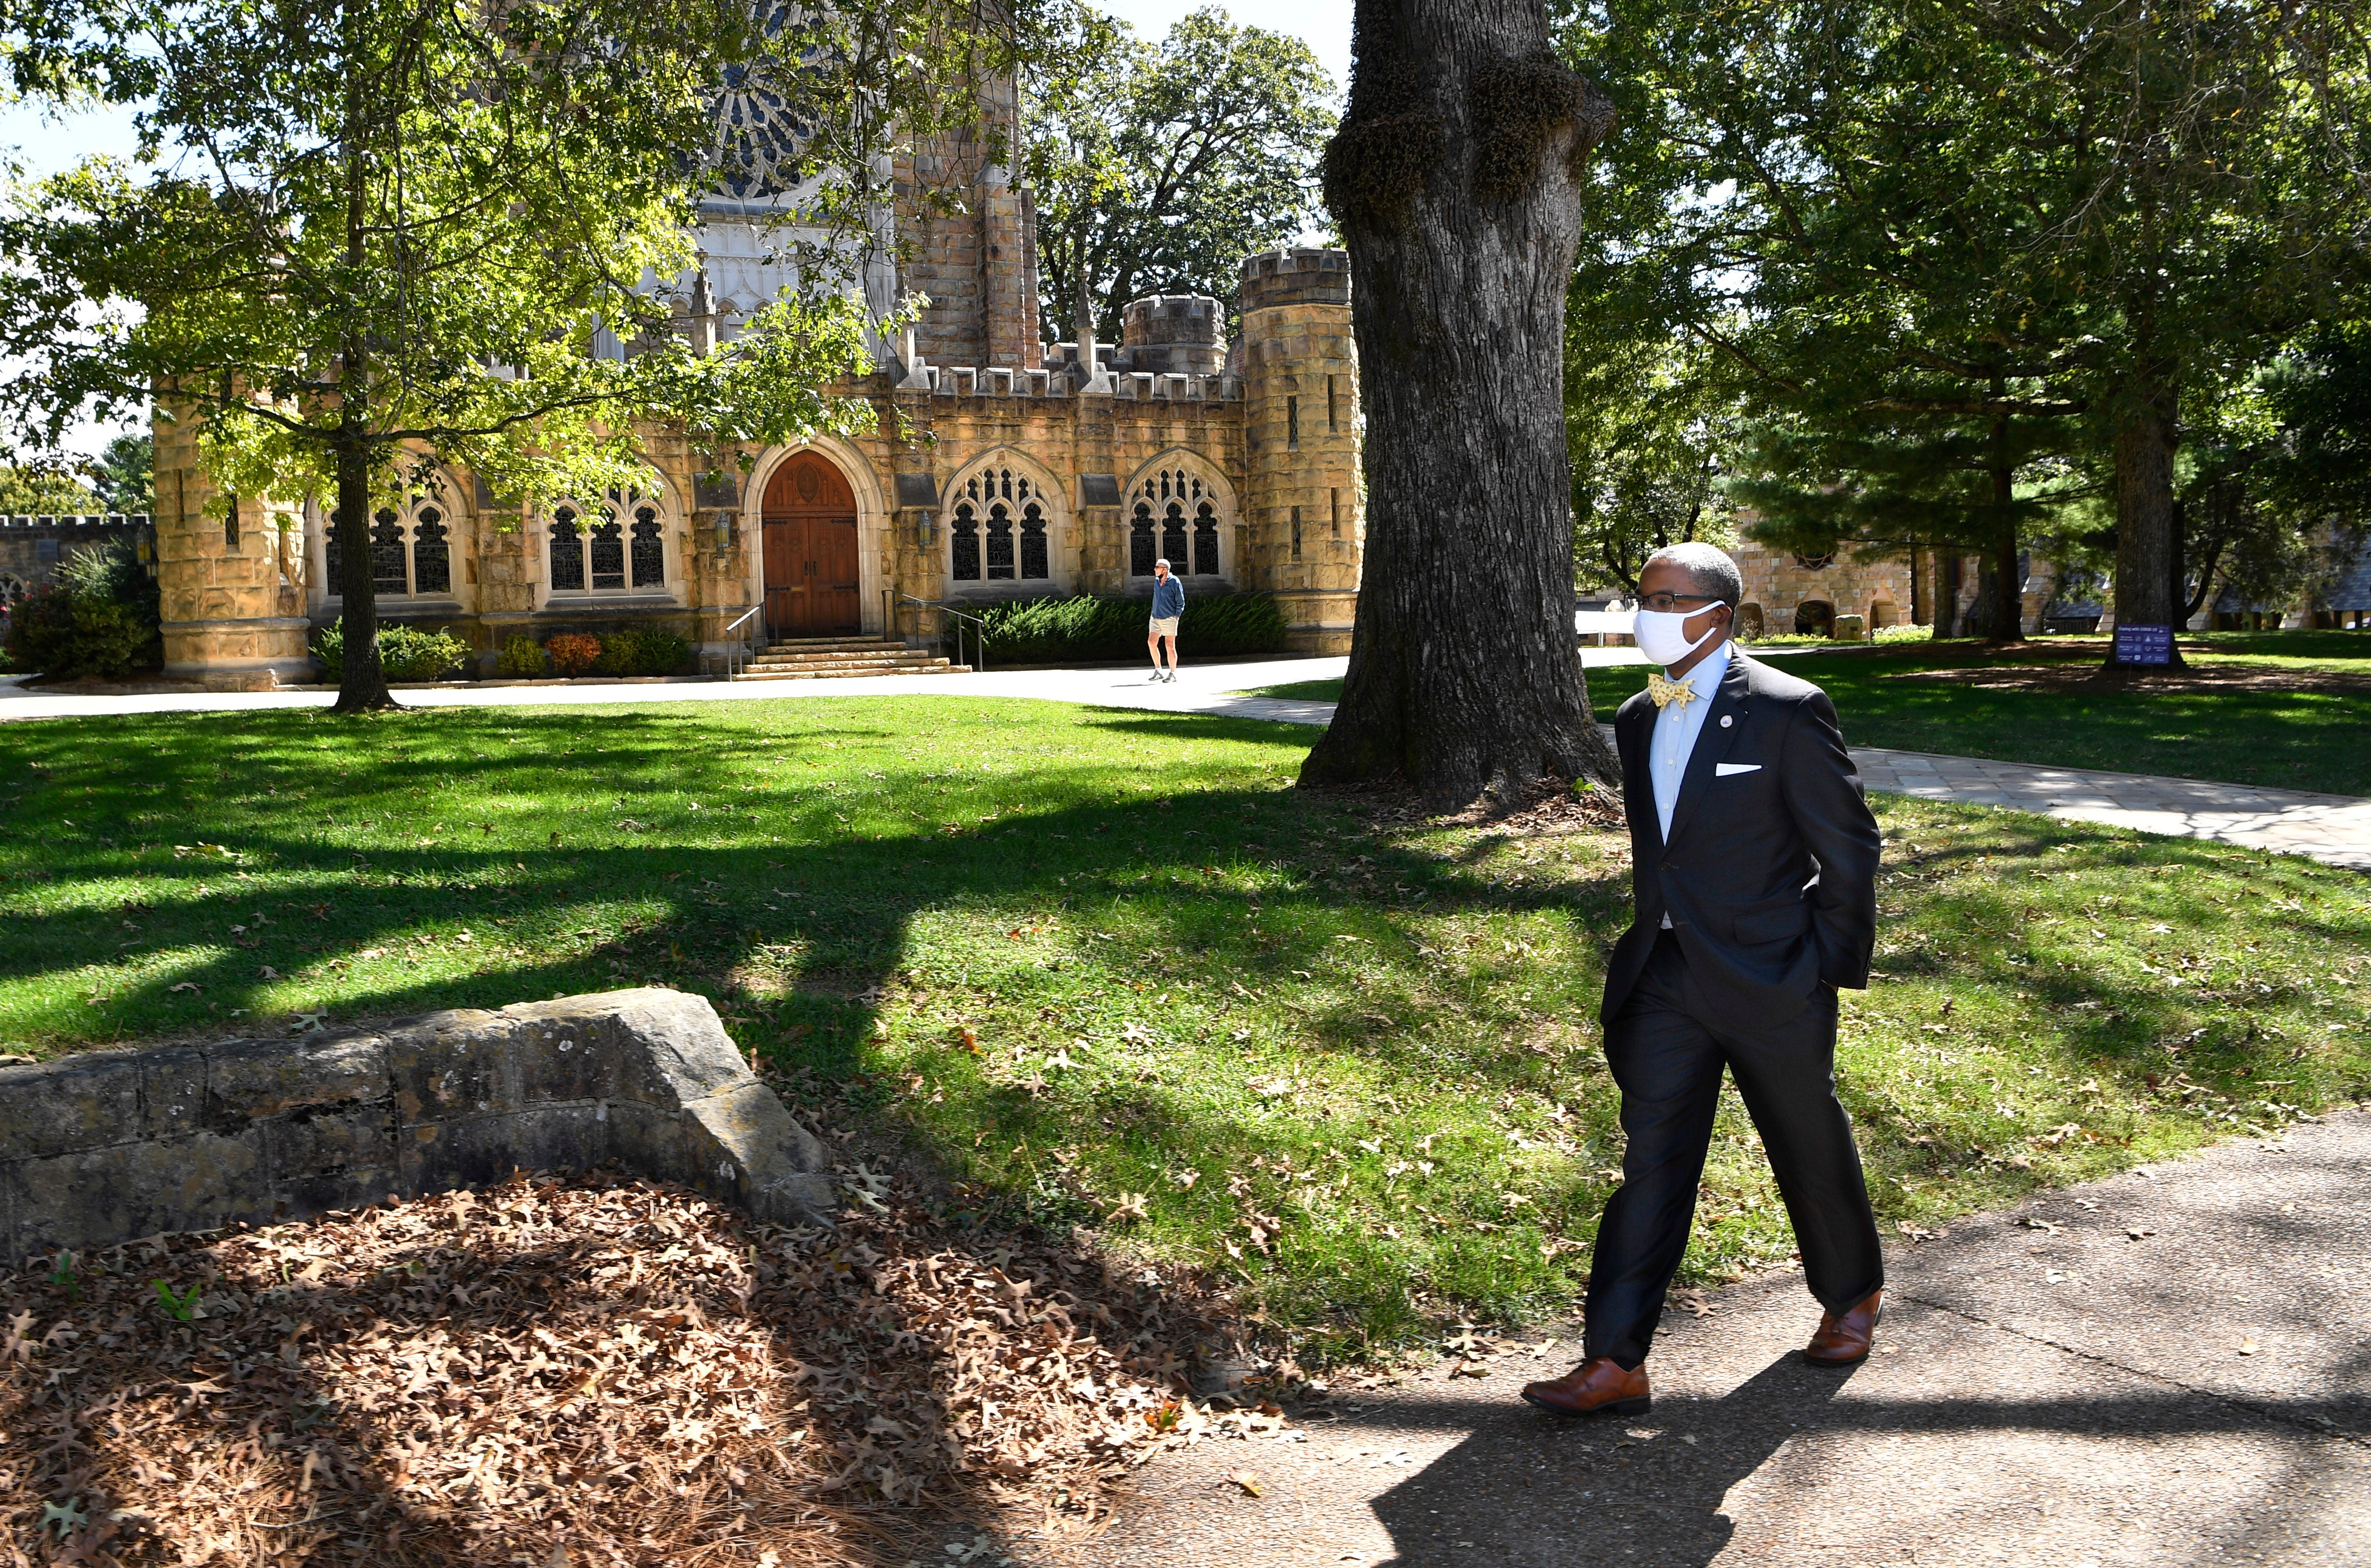 President and Vice-Chancellor Reuben E. Brigety II is the first African American to serve in that post. He walks past the most impressive building on campus, All Saints Chapel, at The University of the South in Sewanee, Tenn. Tuesday, Sept. 22, 2020.